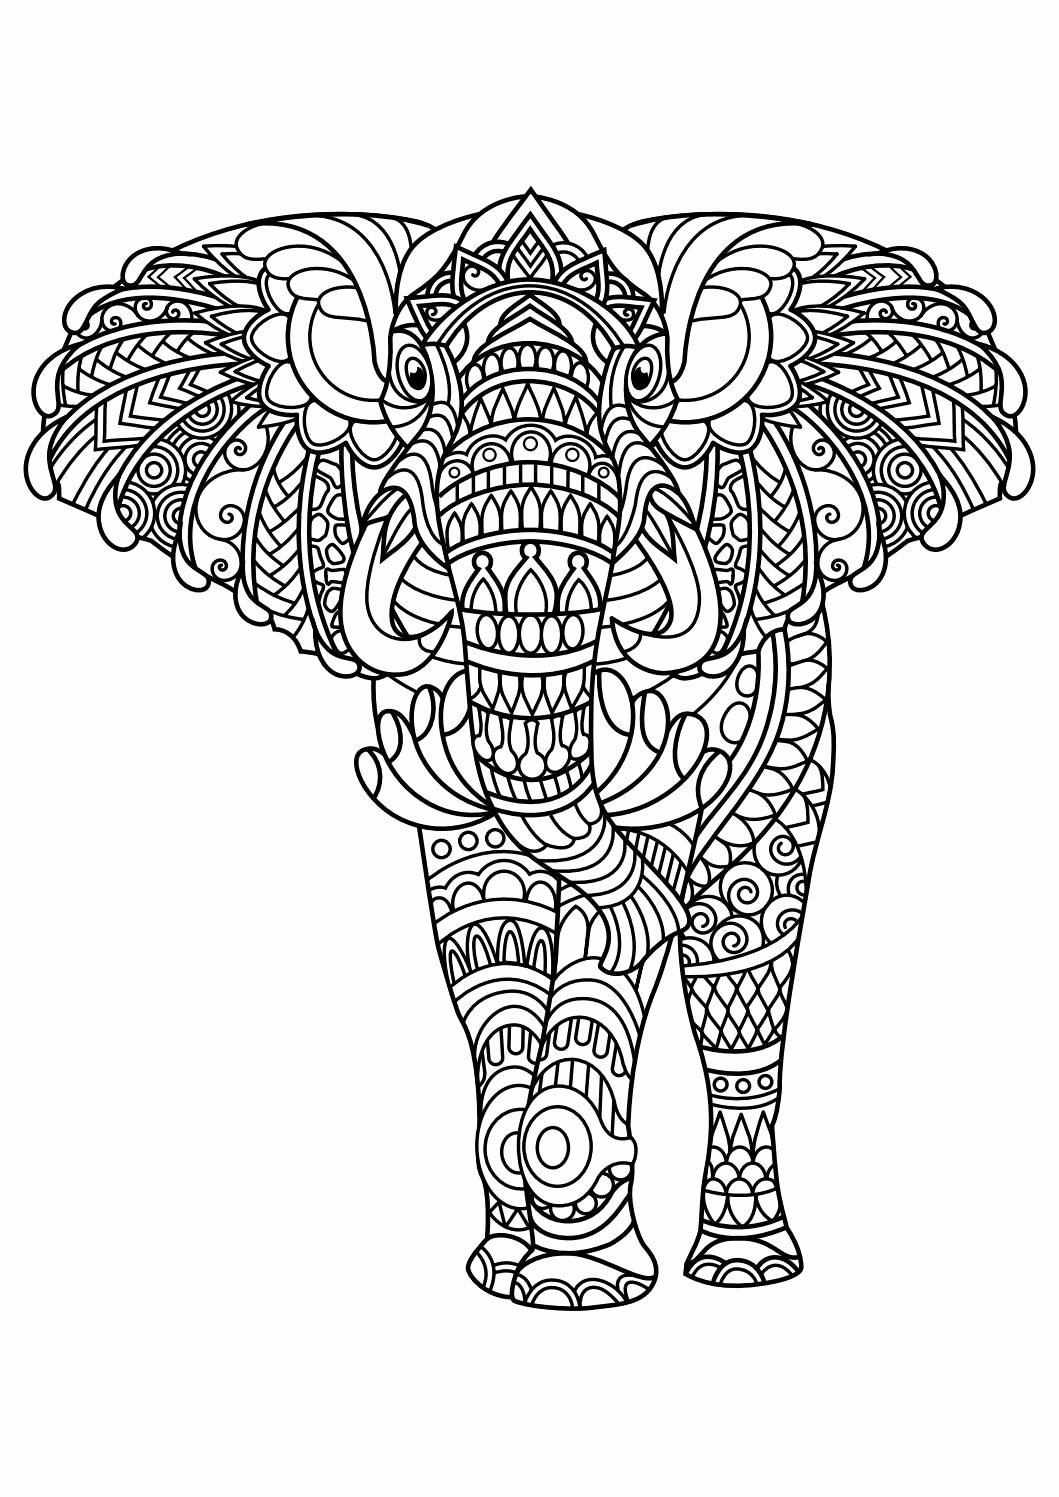 Animal Pictures to Color Unique Animal Coloring Pages Pdf Coloring Animals